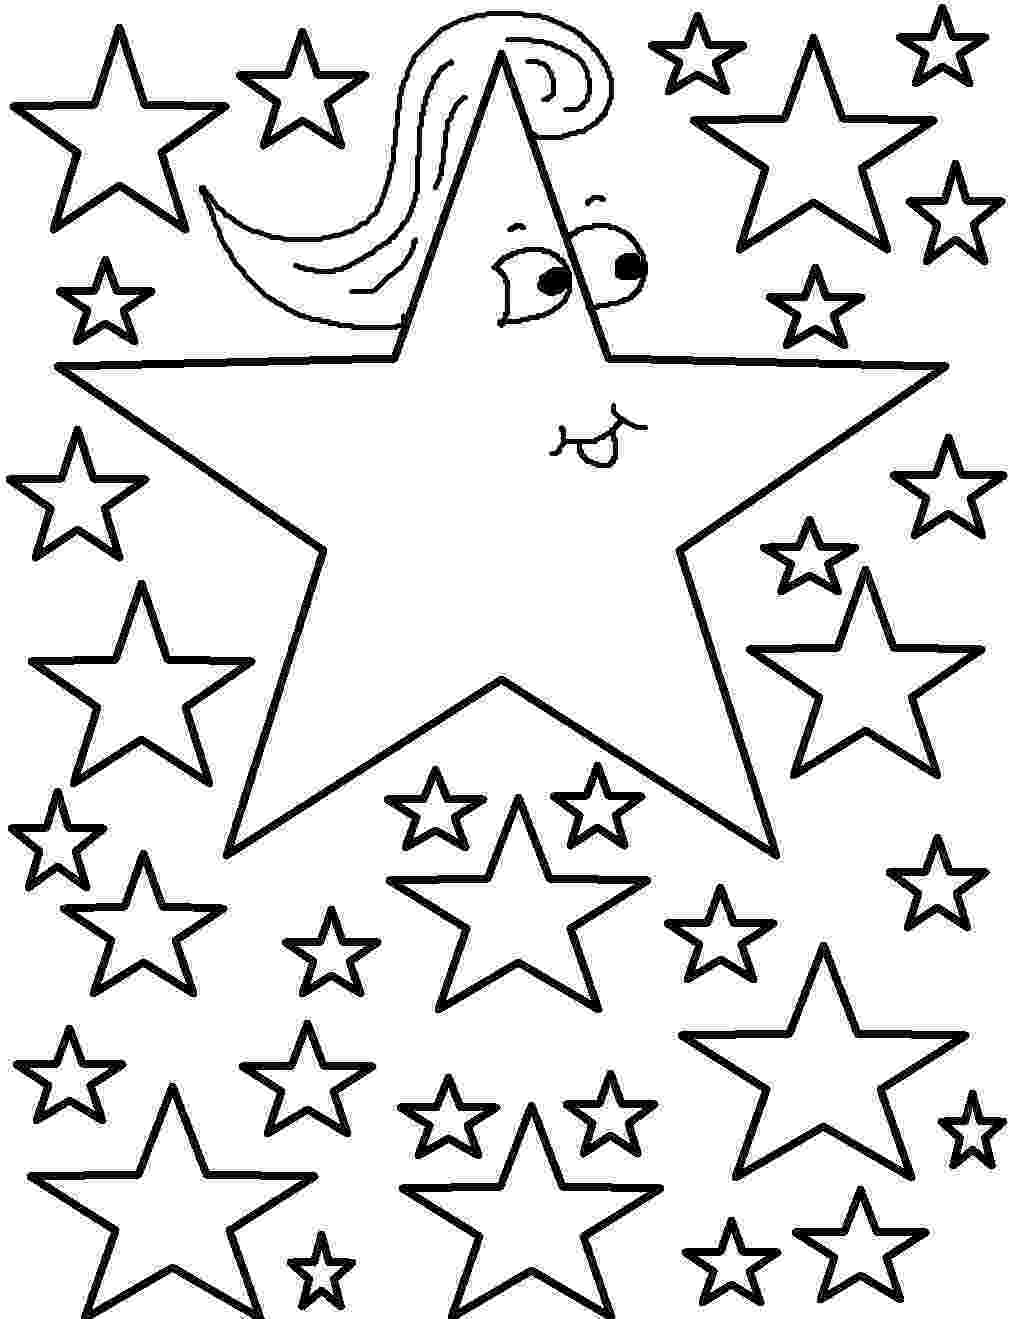 picture of a star to color free printable star coloring pages for kids star color picture of to a